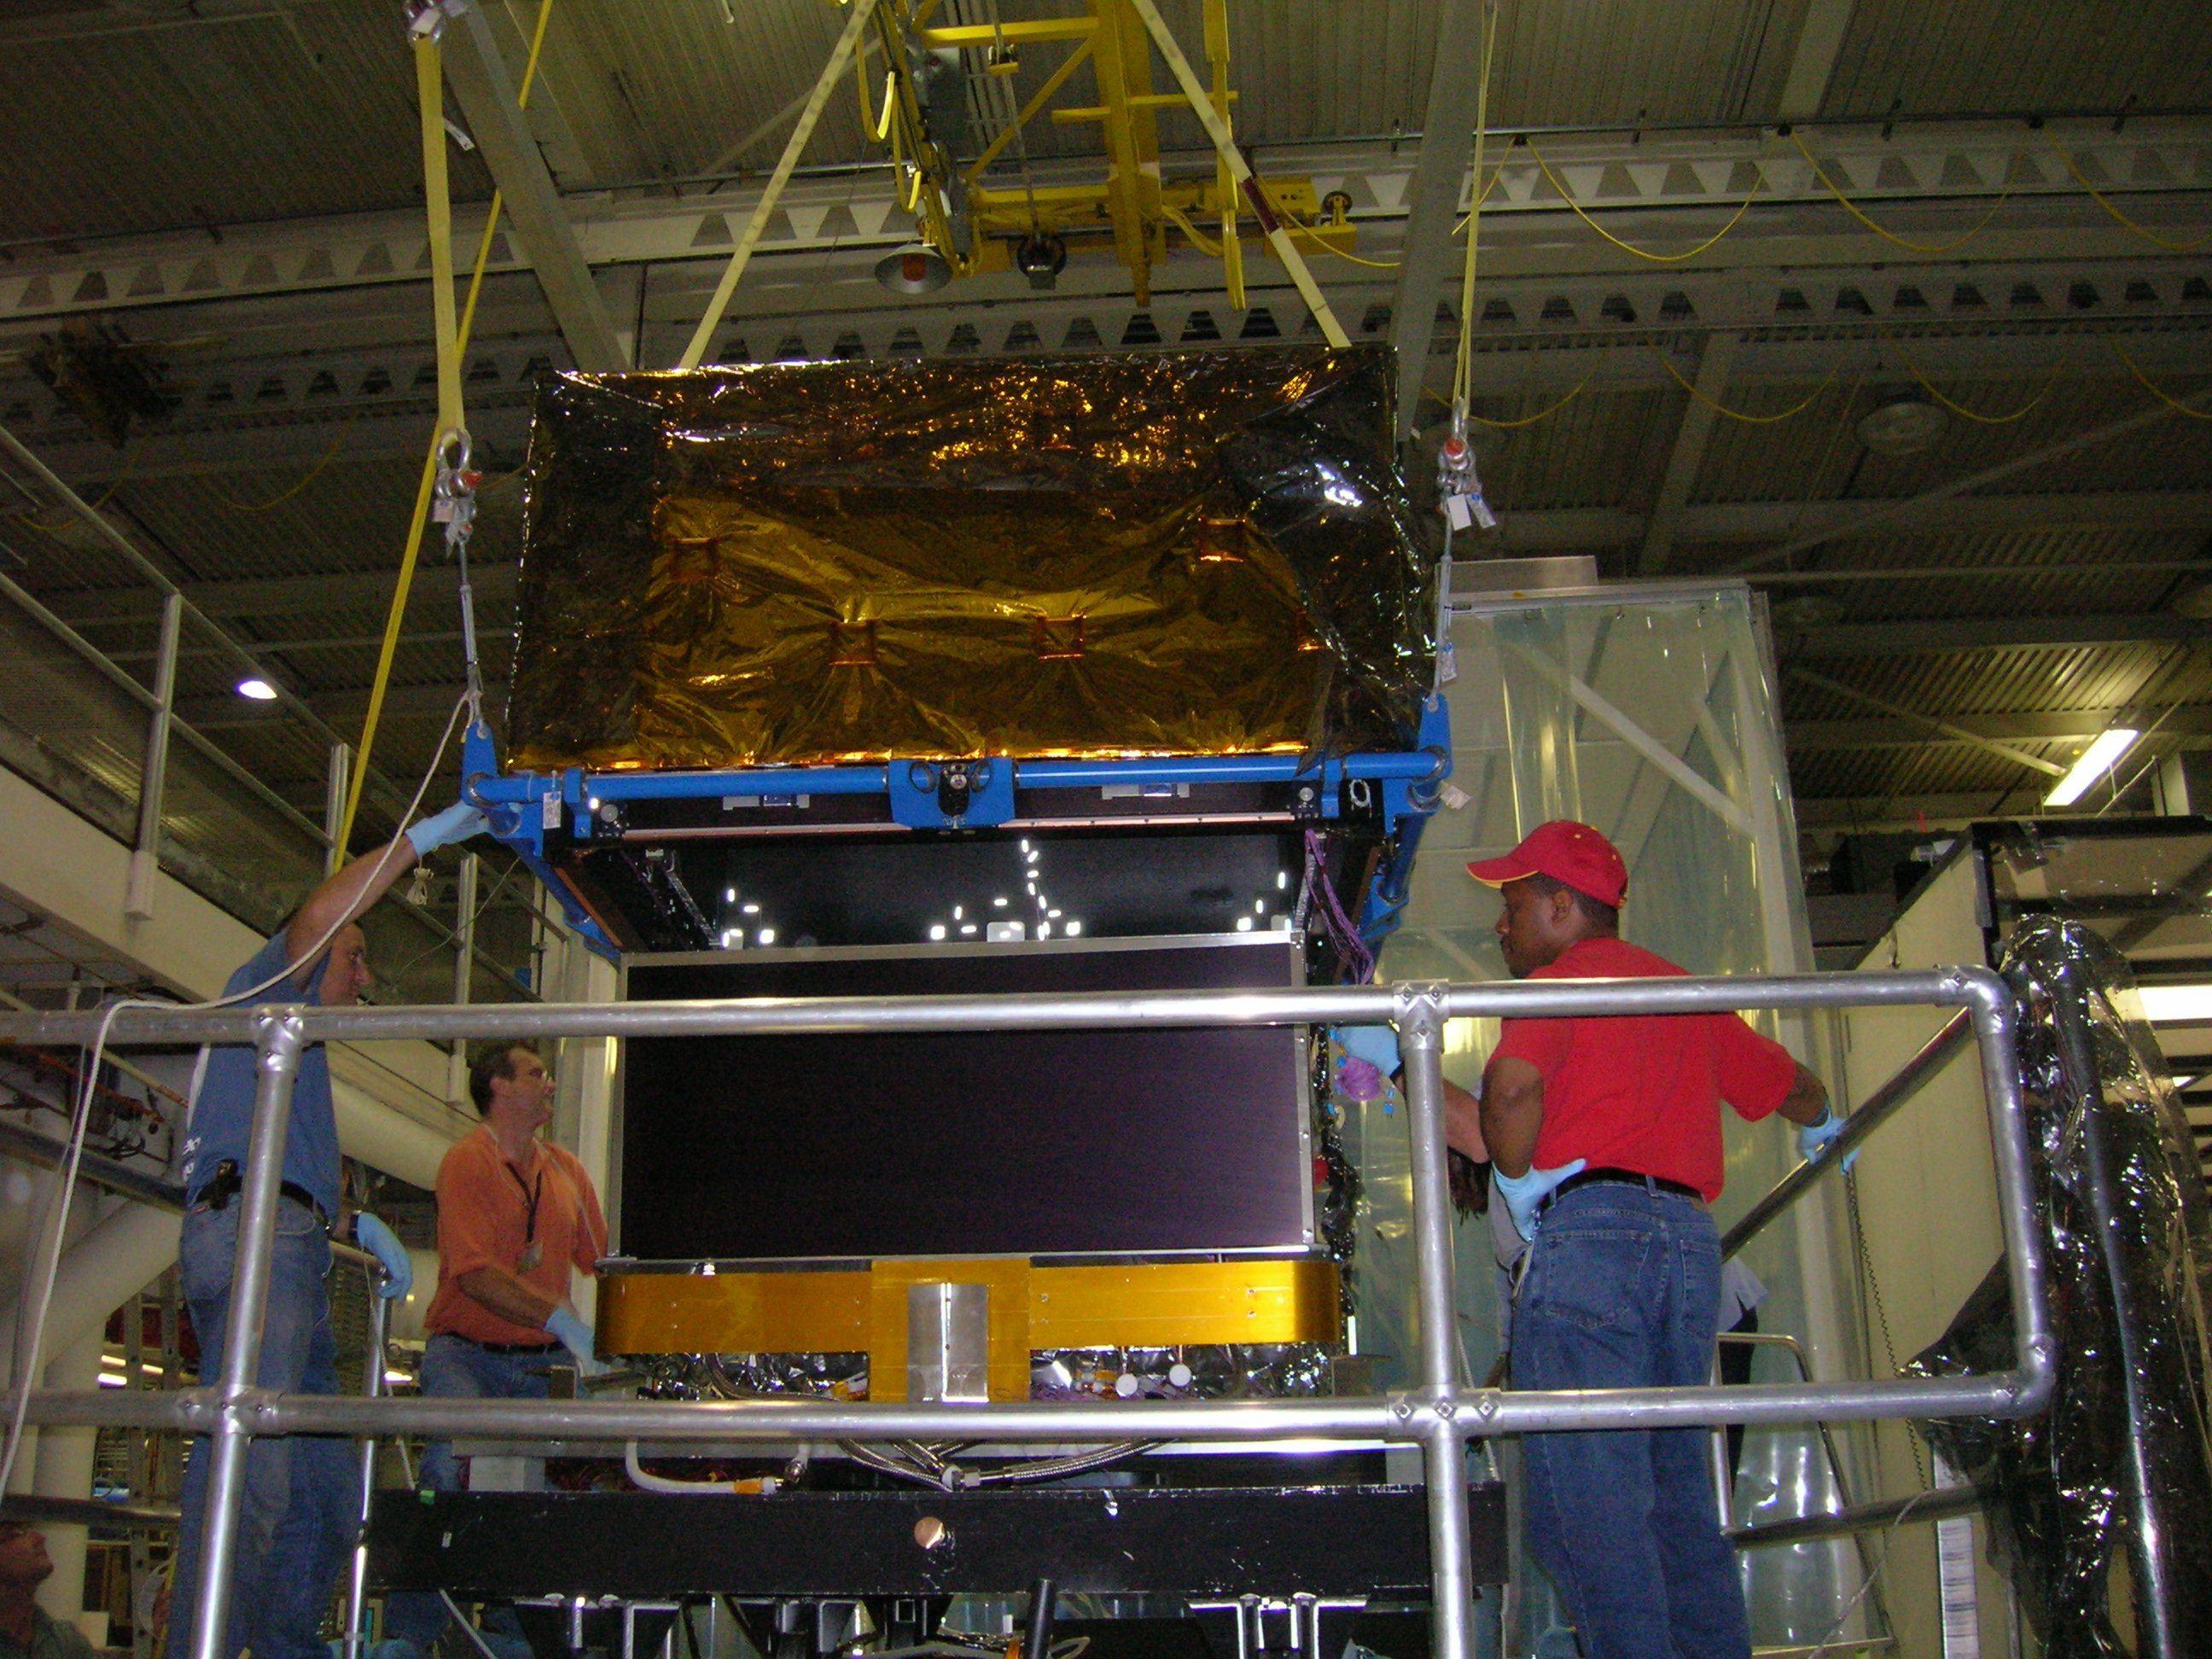 ACD Being Installed on its Thermal Vacuum Fixture